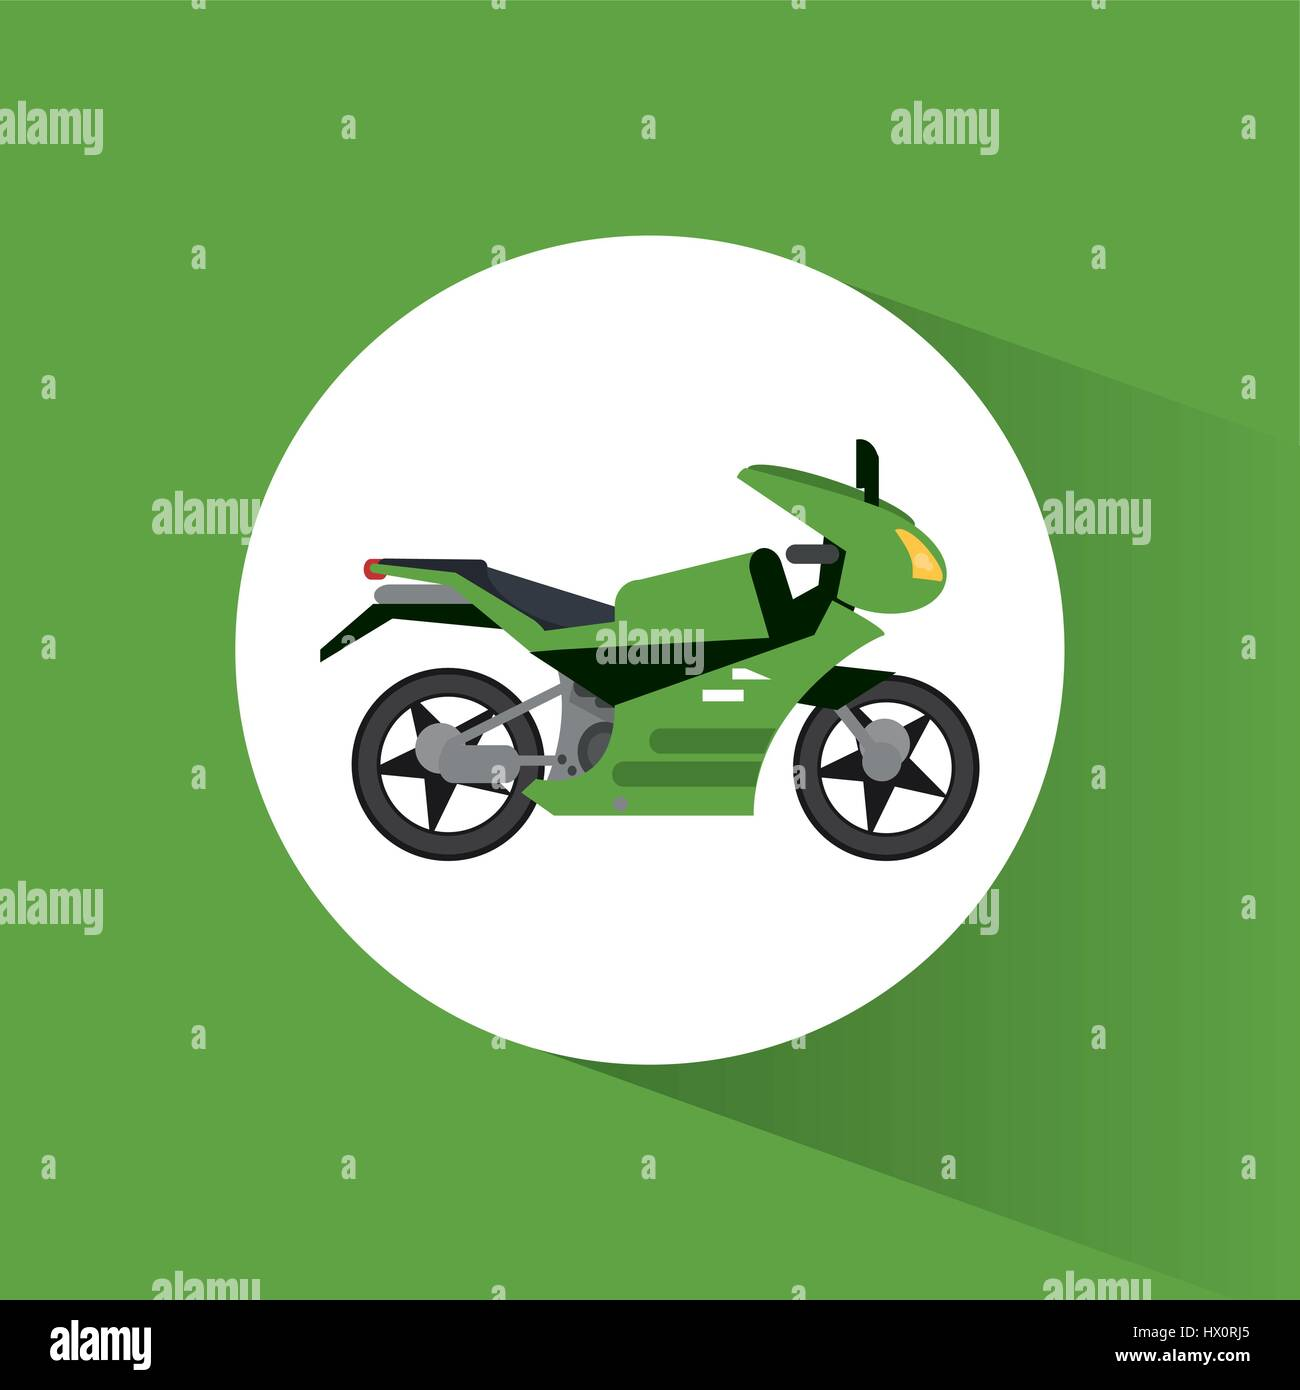 green motorcycle transport vehicle image - Stock Image